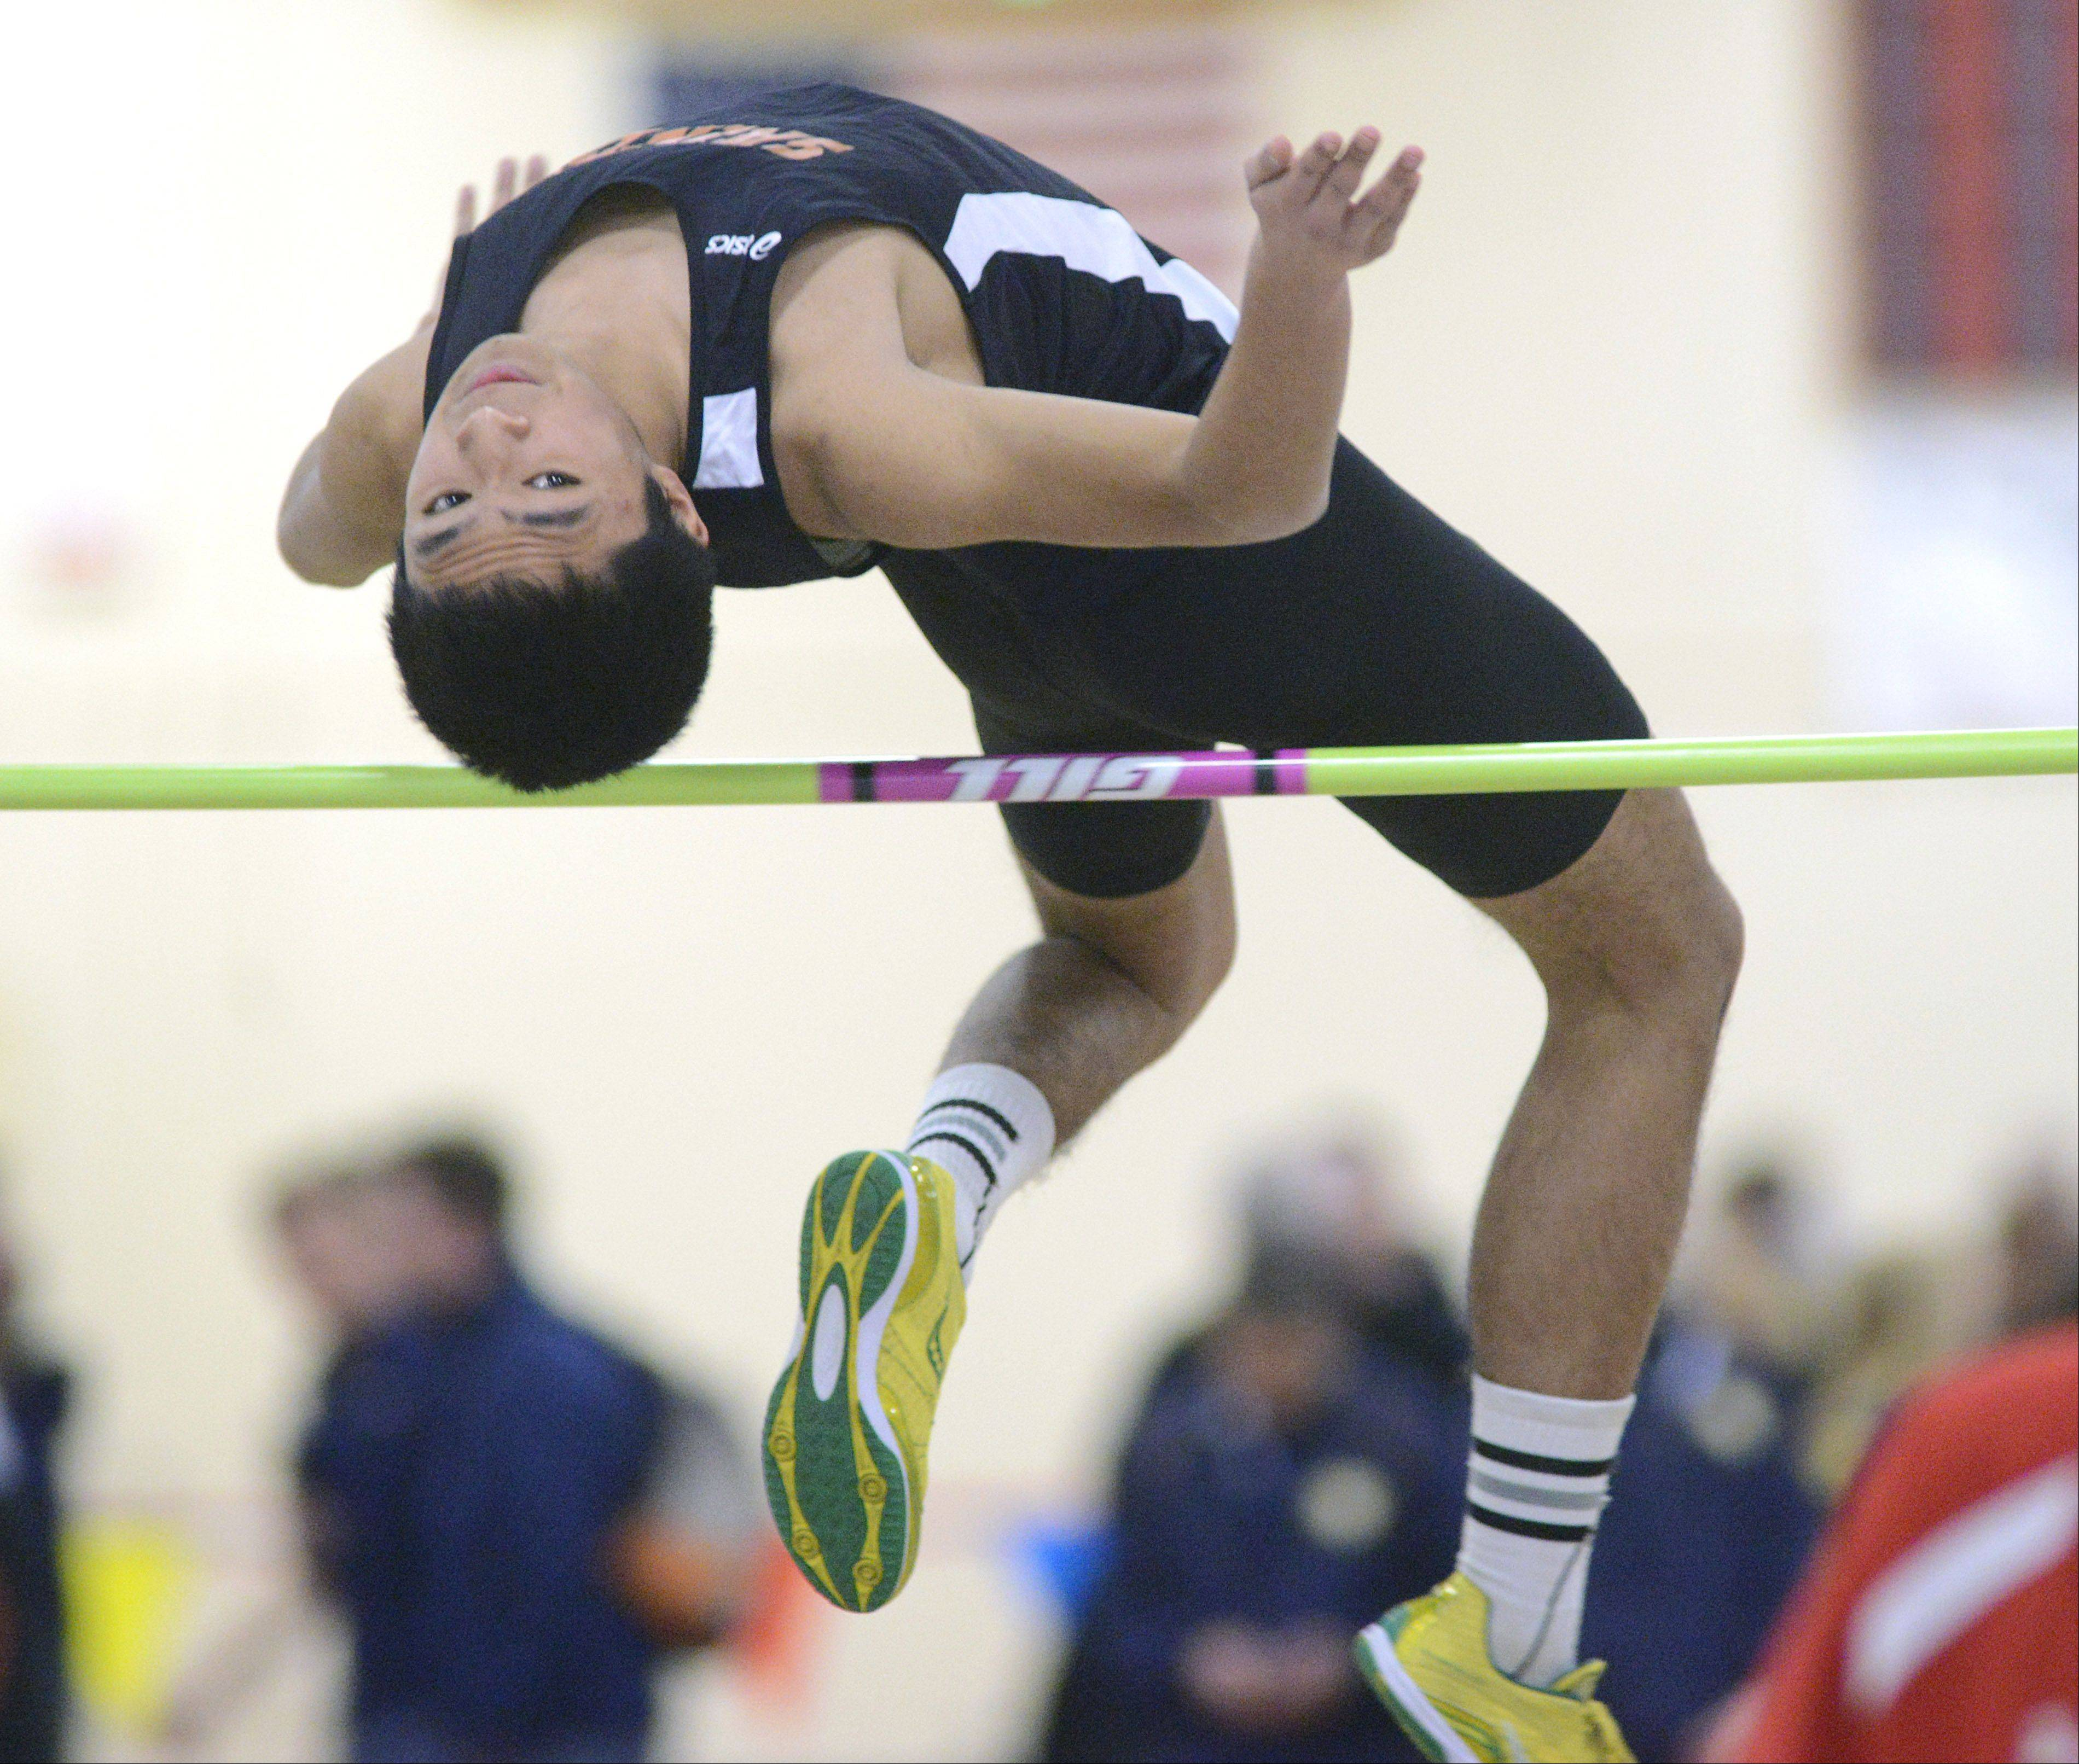 St. Charles East's Ryan Memije in the high jump finals at the Upstate Eight Conference in Batavia on Saturday, March 16.